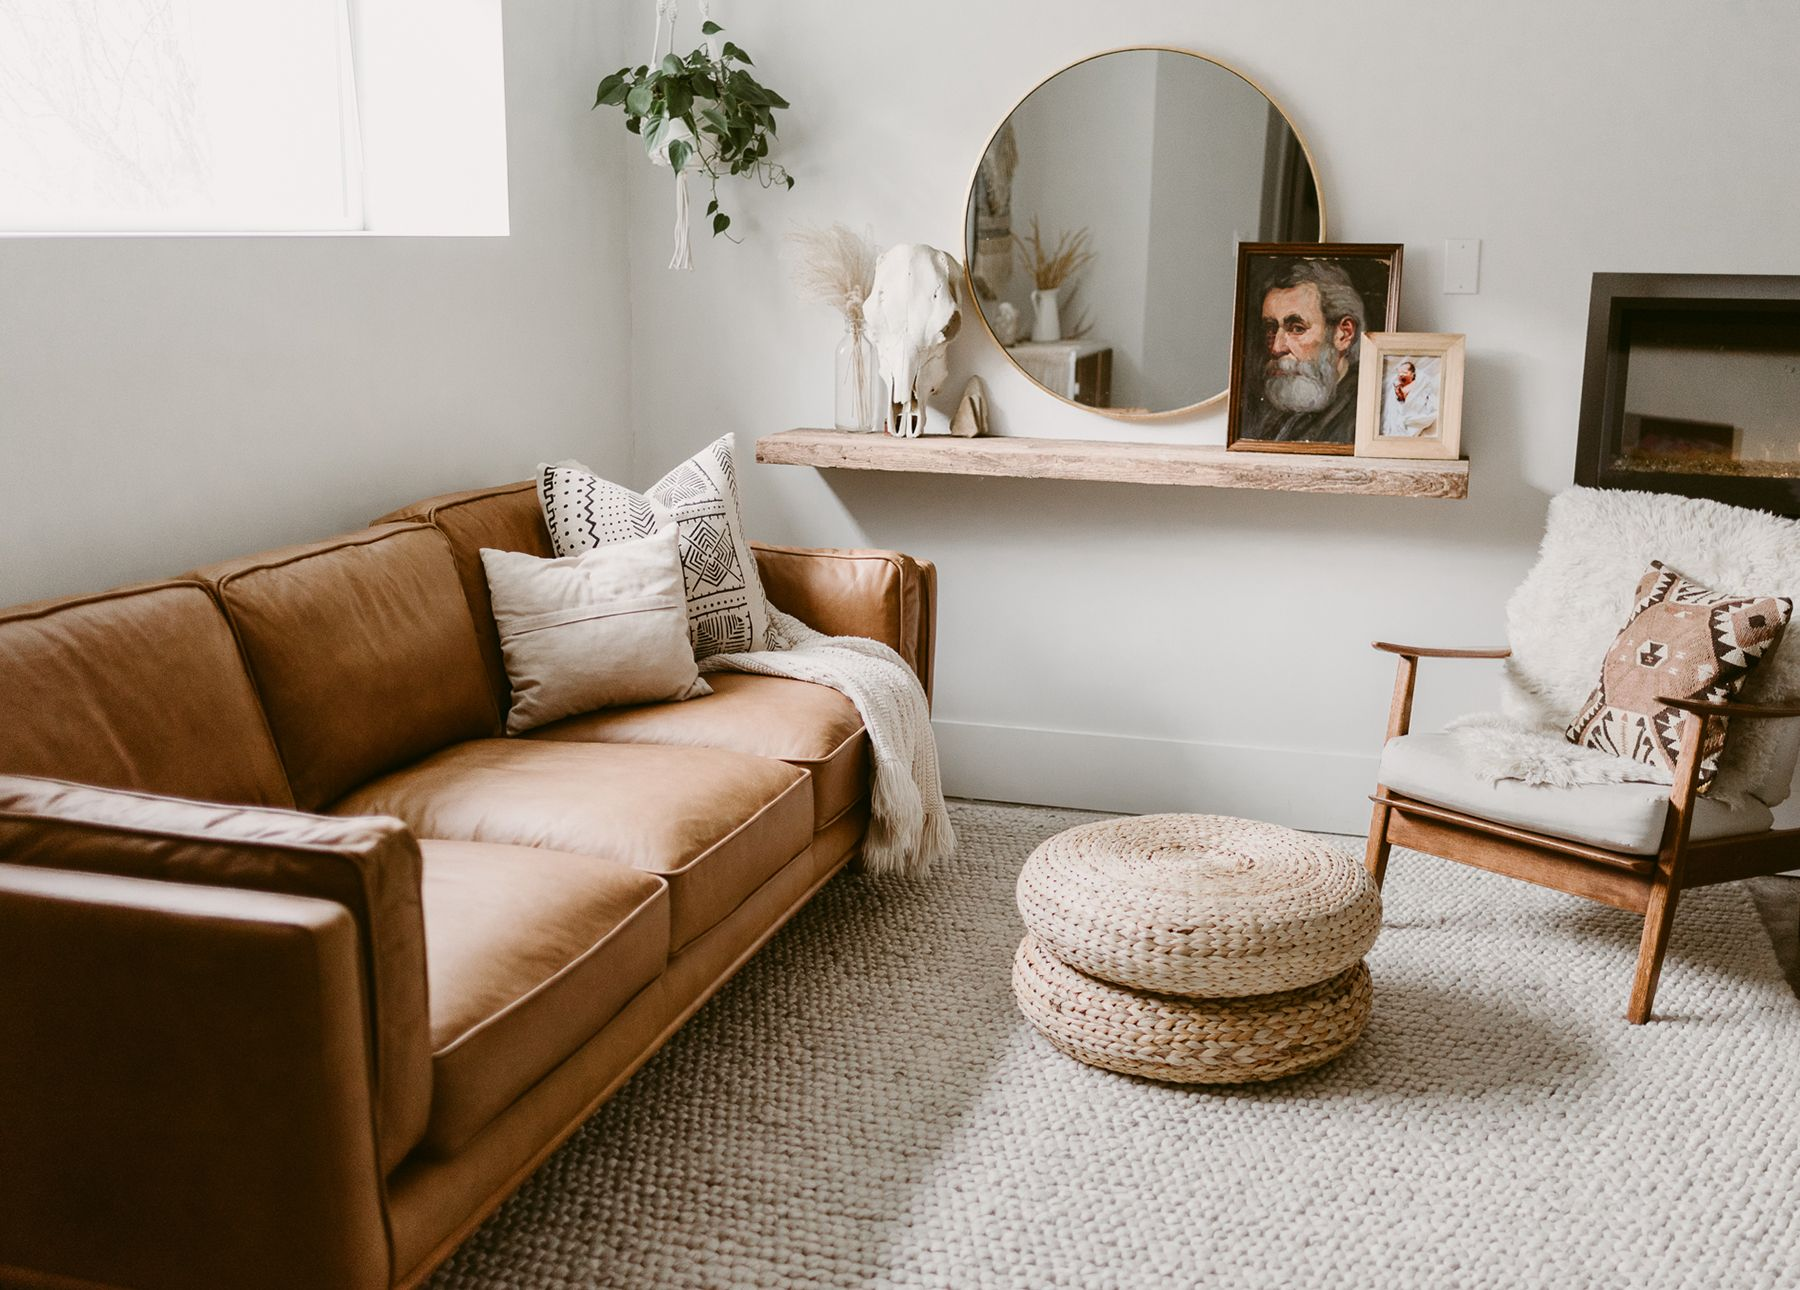 How to Clean Leather Furniture Leather furniture, Living